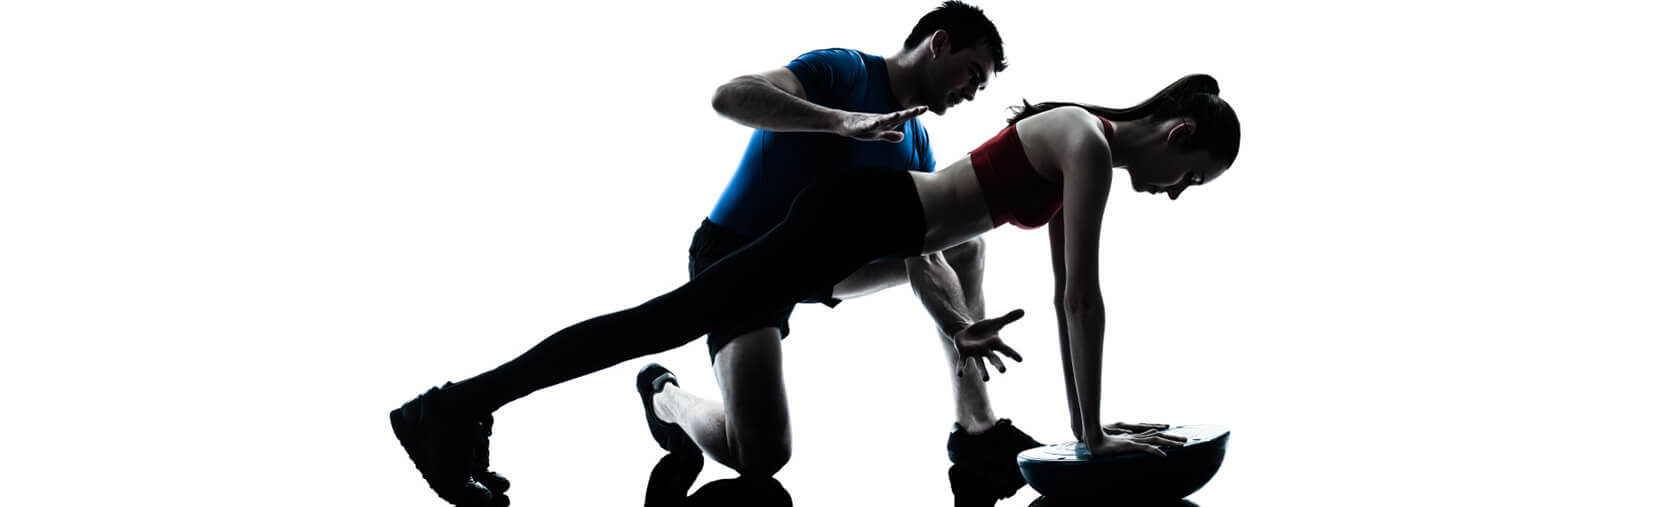 Personal trainer spotting female client as she holds a plank on a Bosu ball